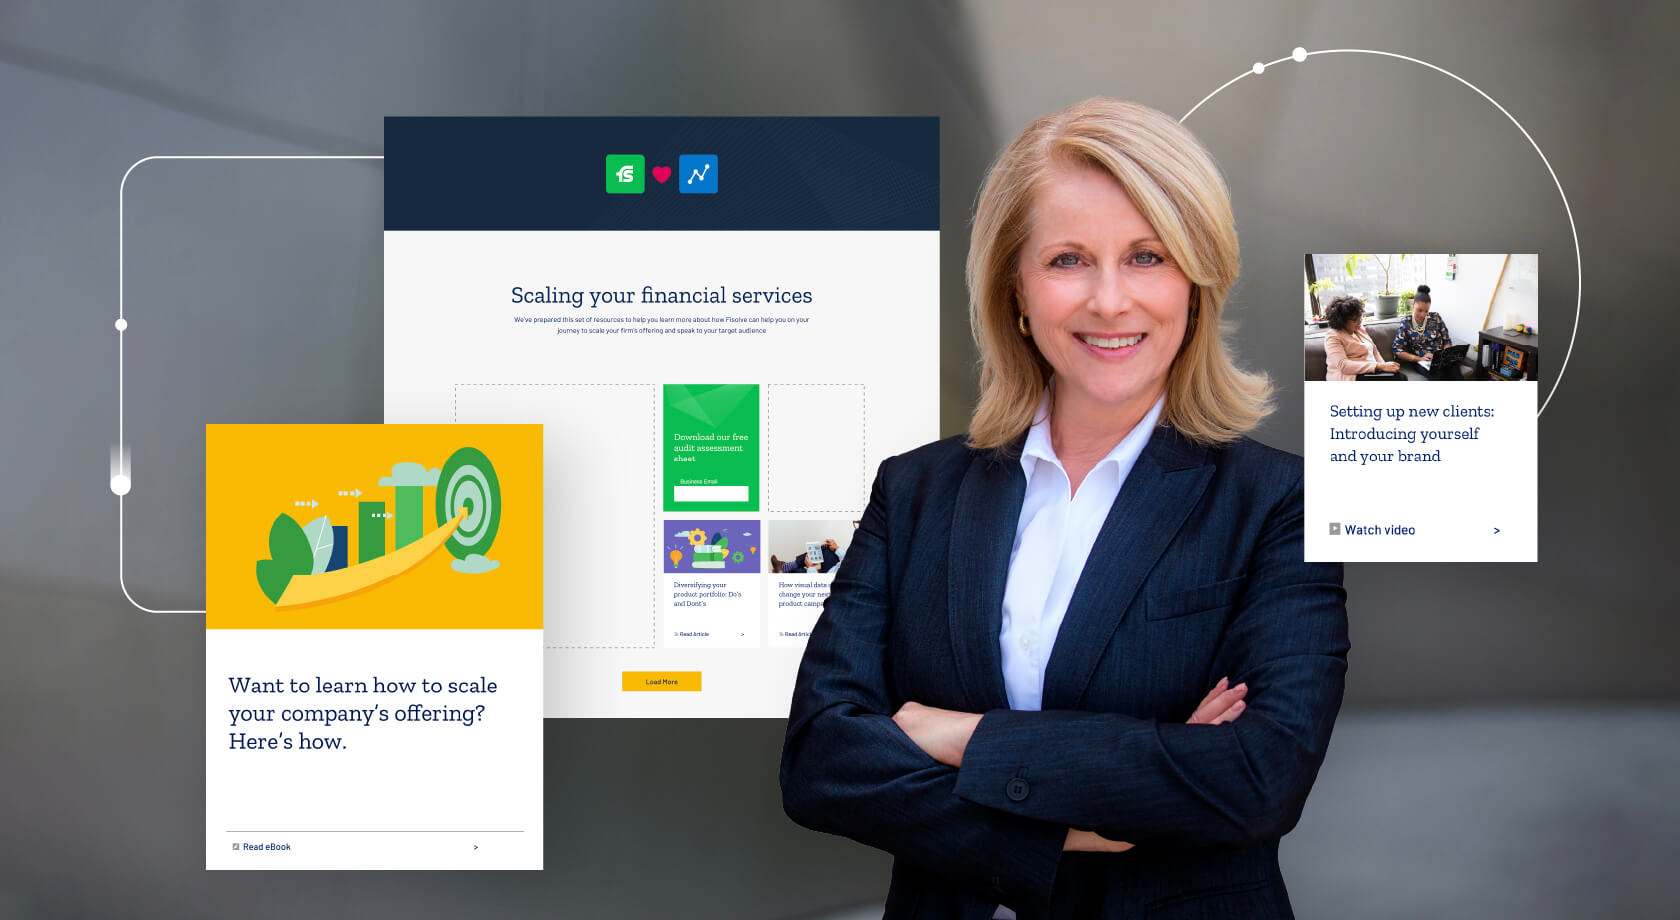 Woman in business attire surrounded by marketing campaign content